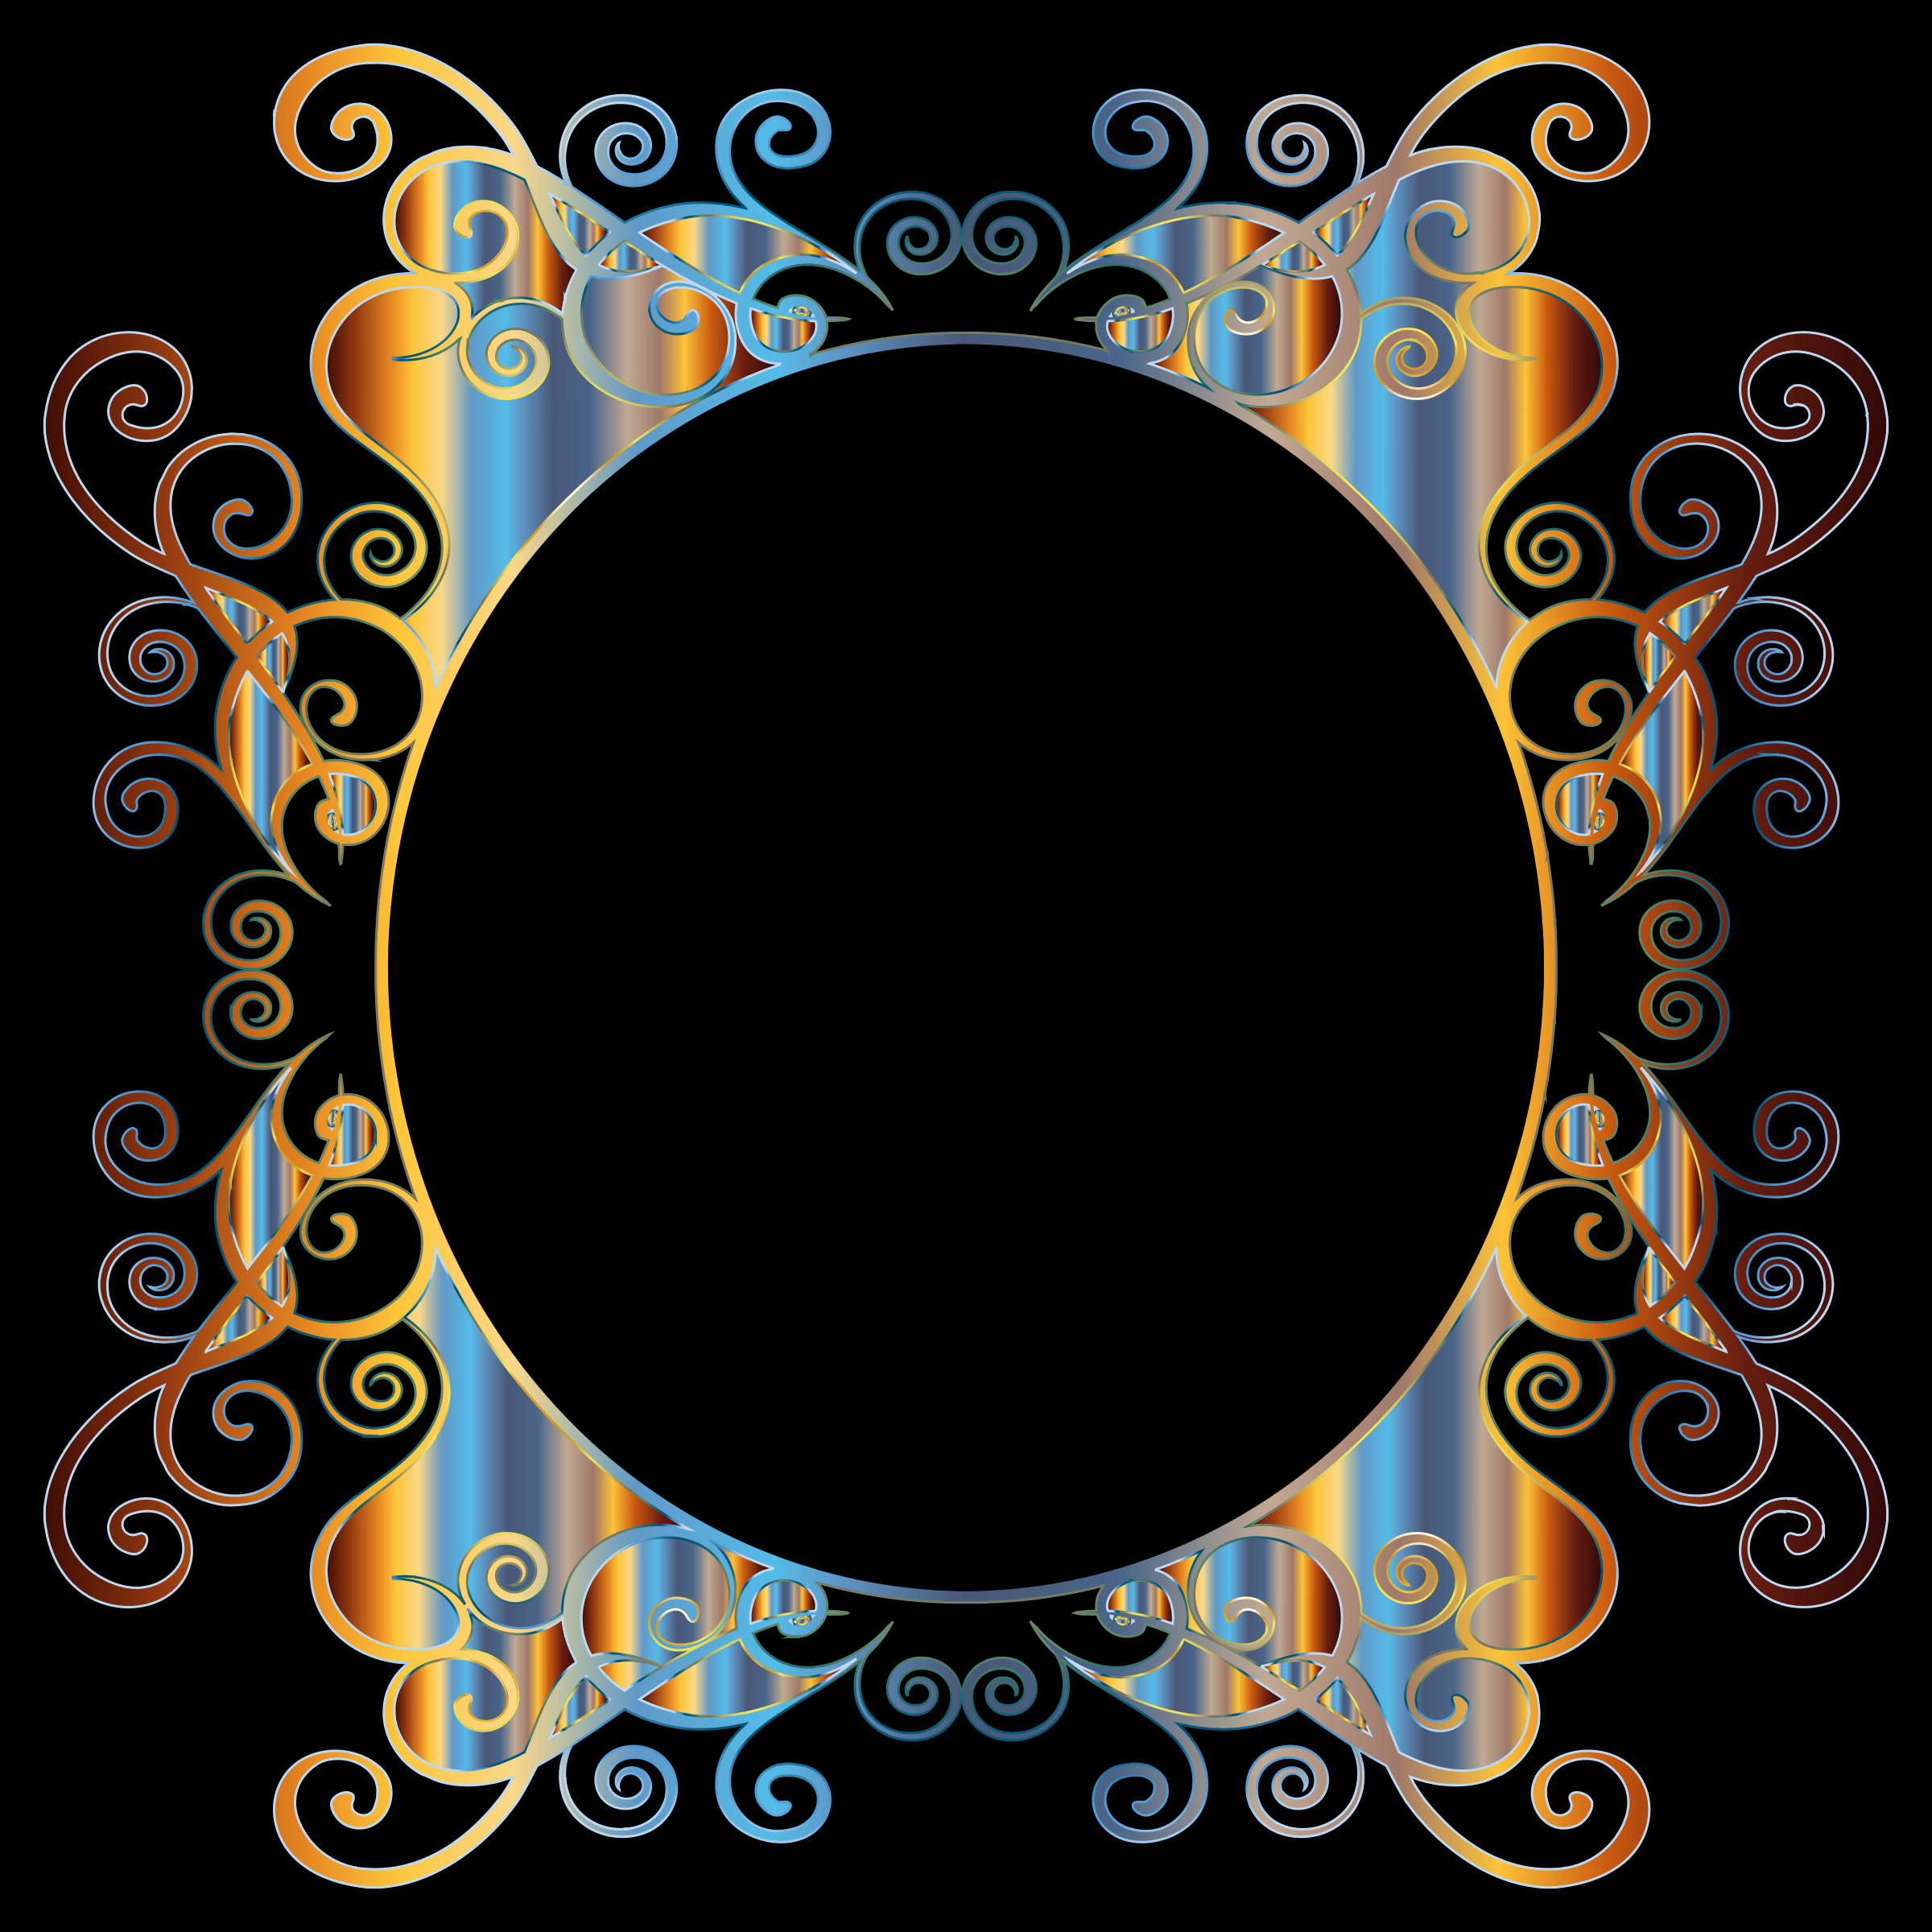 Prismatic Flourish Frame 2 by GDJ